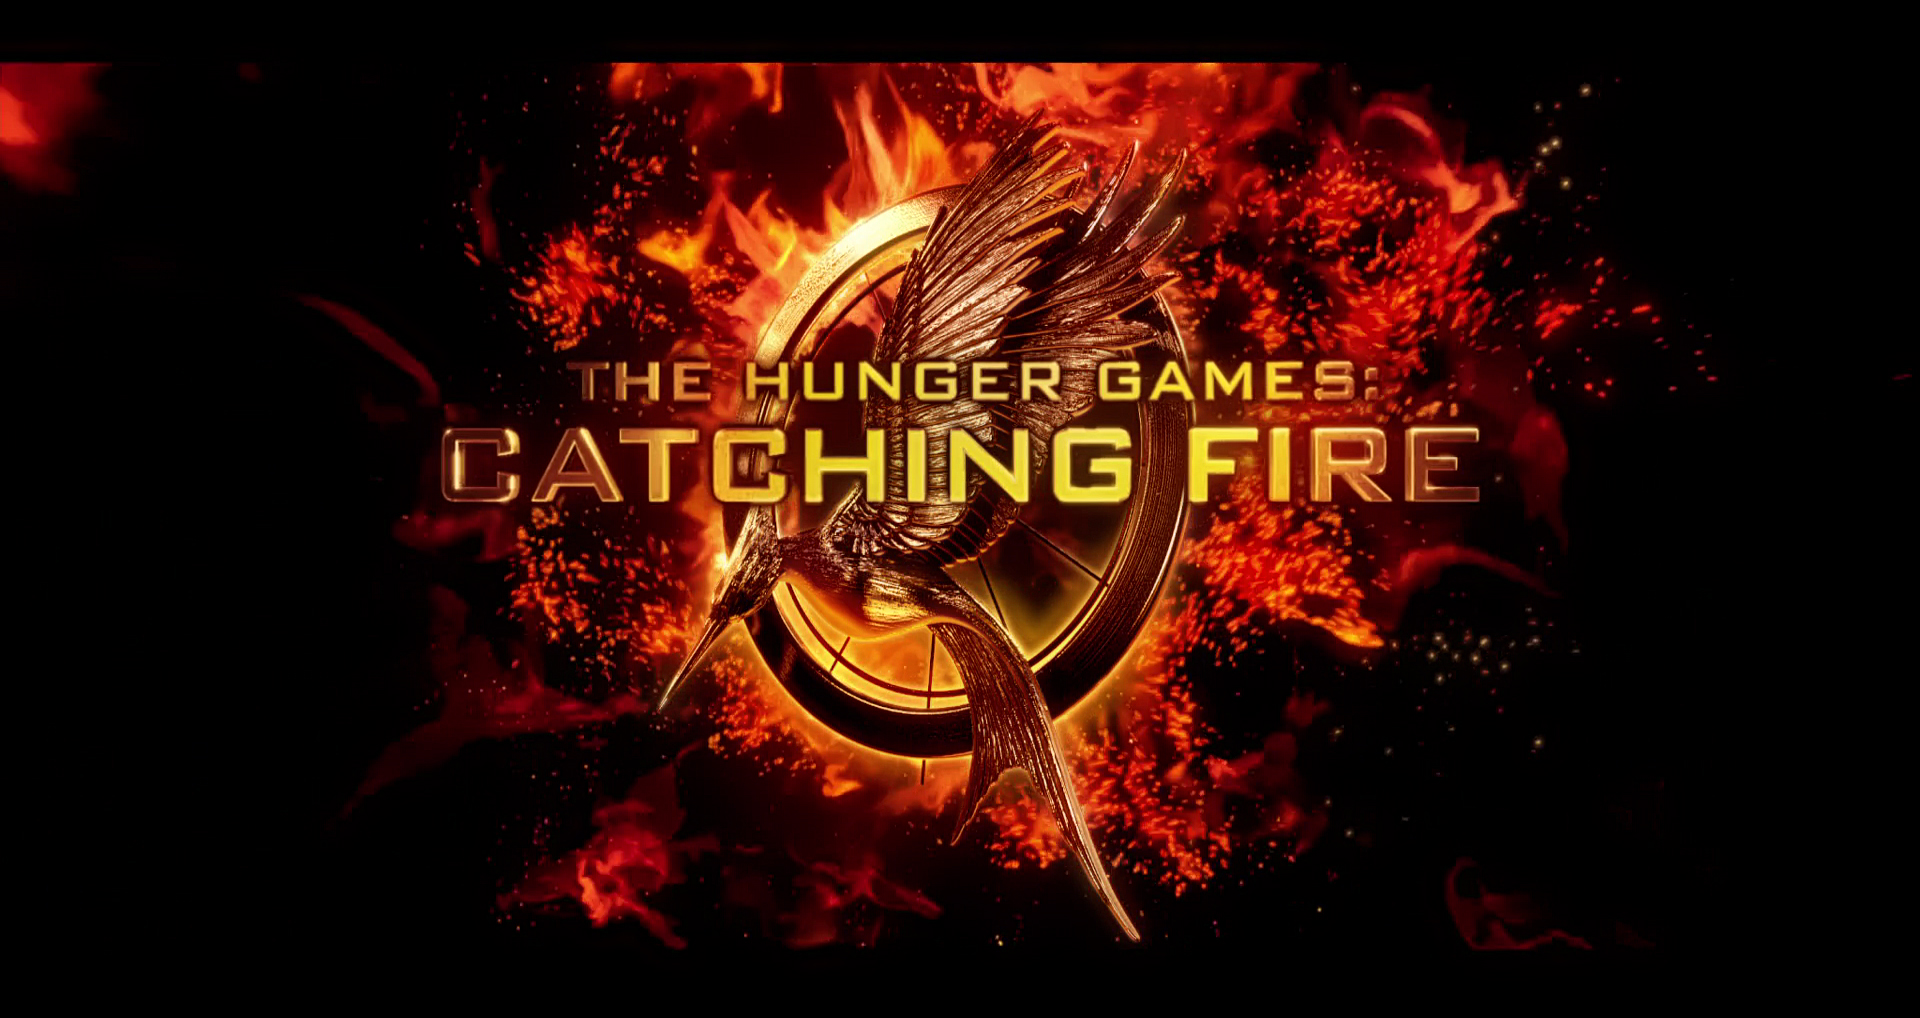 catching fire symbolism essay Catching fire cinna pins the mockingjay pin onto katniss' arm the pin becomes a symbol of the rebellion in catching fire after katniss wins the games by defying the.